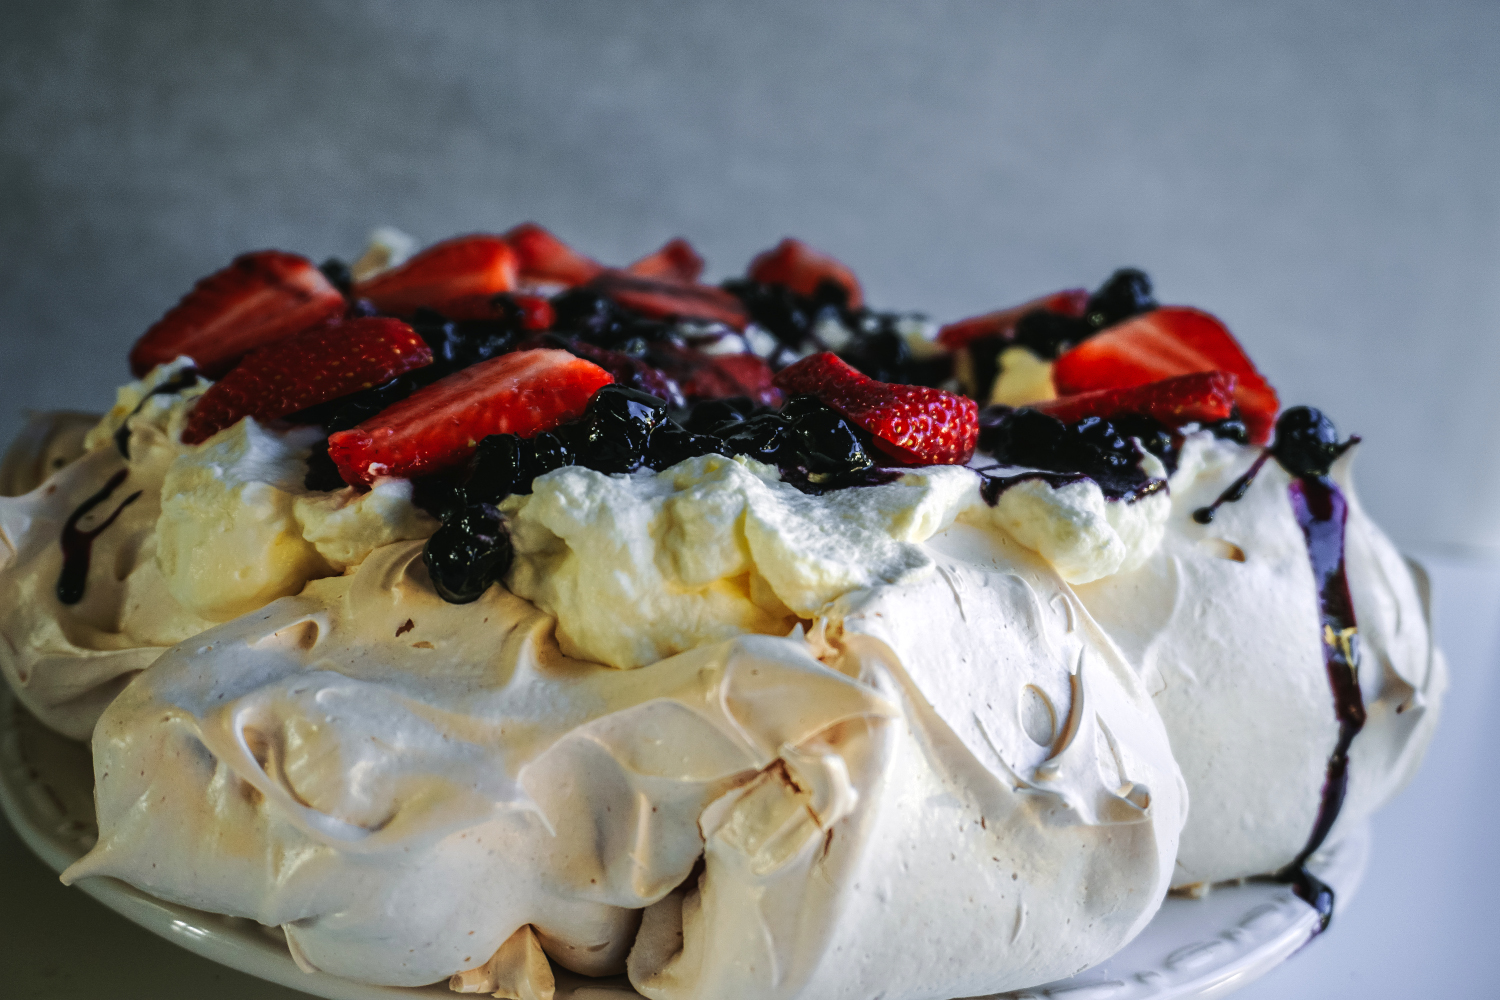 Authentic New Zealand Pavlova recipe that's easier than you think - Earth's Attractions - travel guides by locals, travel itineraries, travel tips, and more